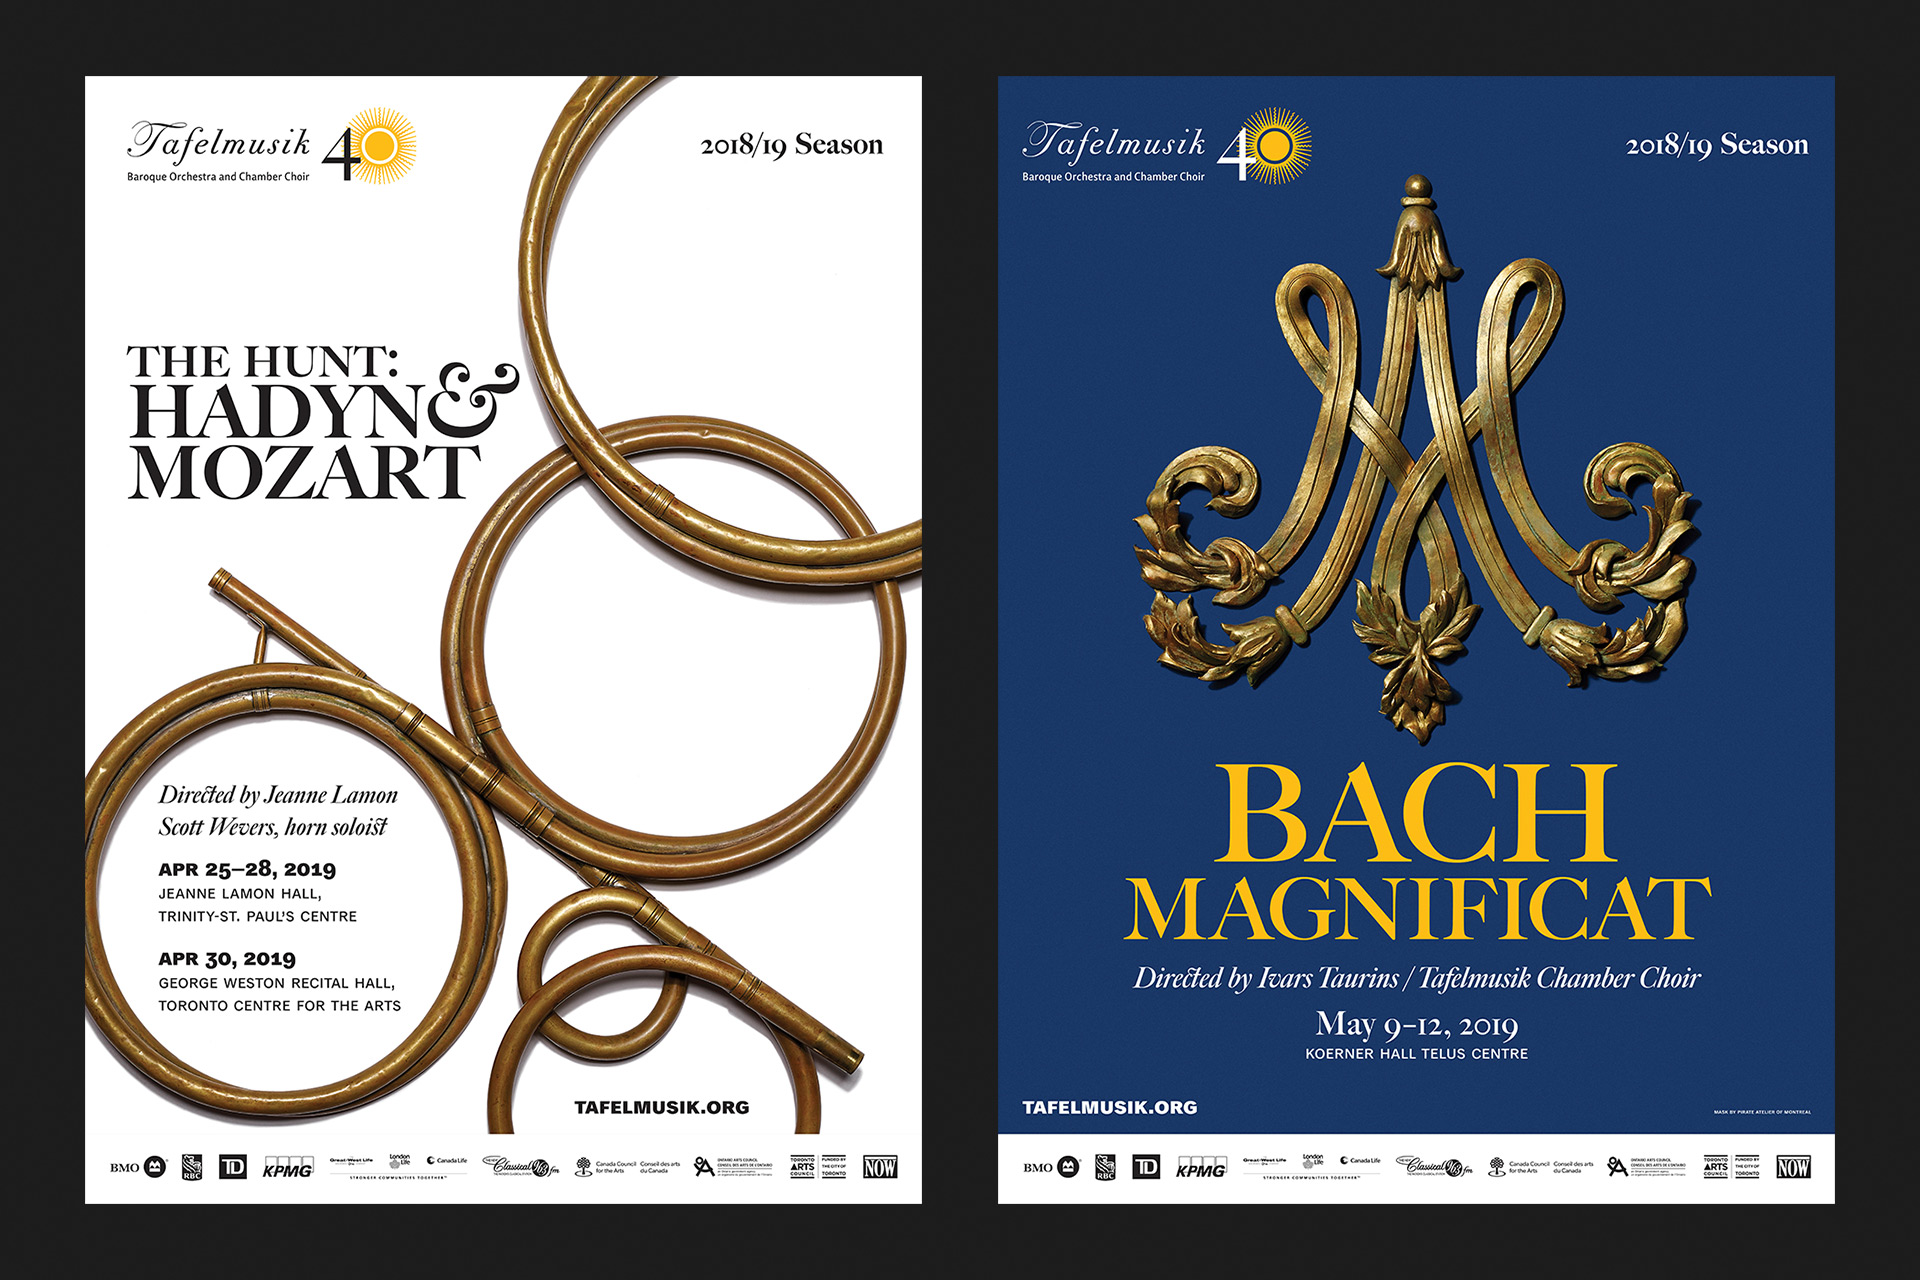 The Hunt: Hadyn & Mozart and Bach Magnificat posters